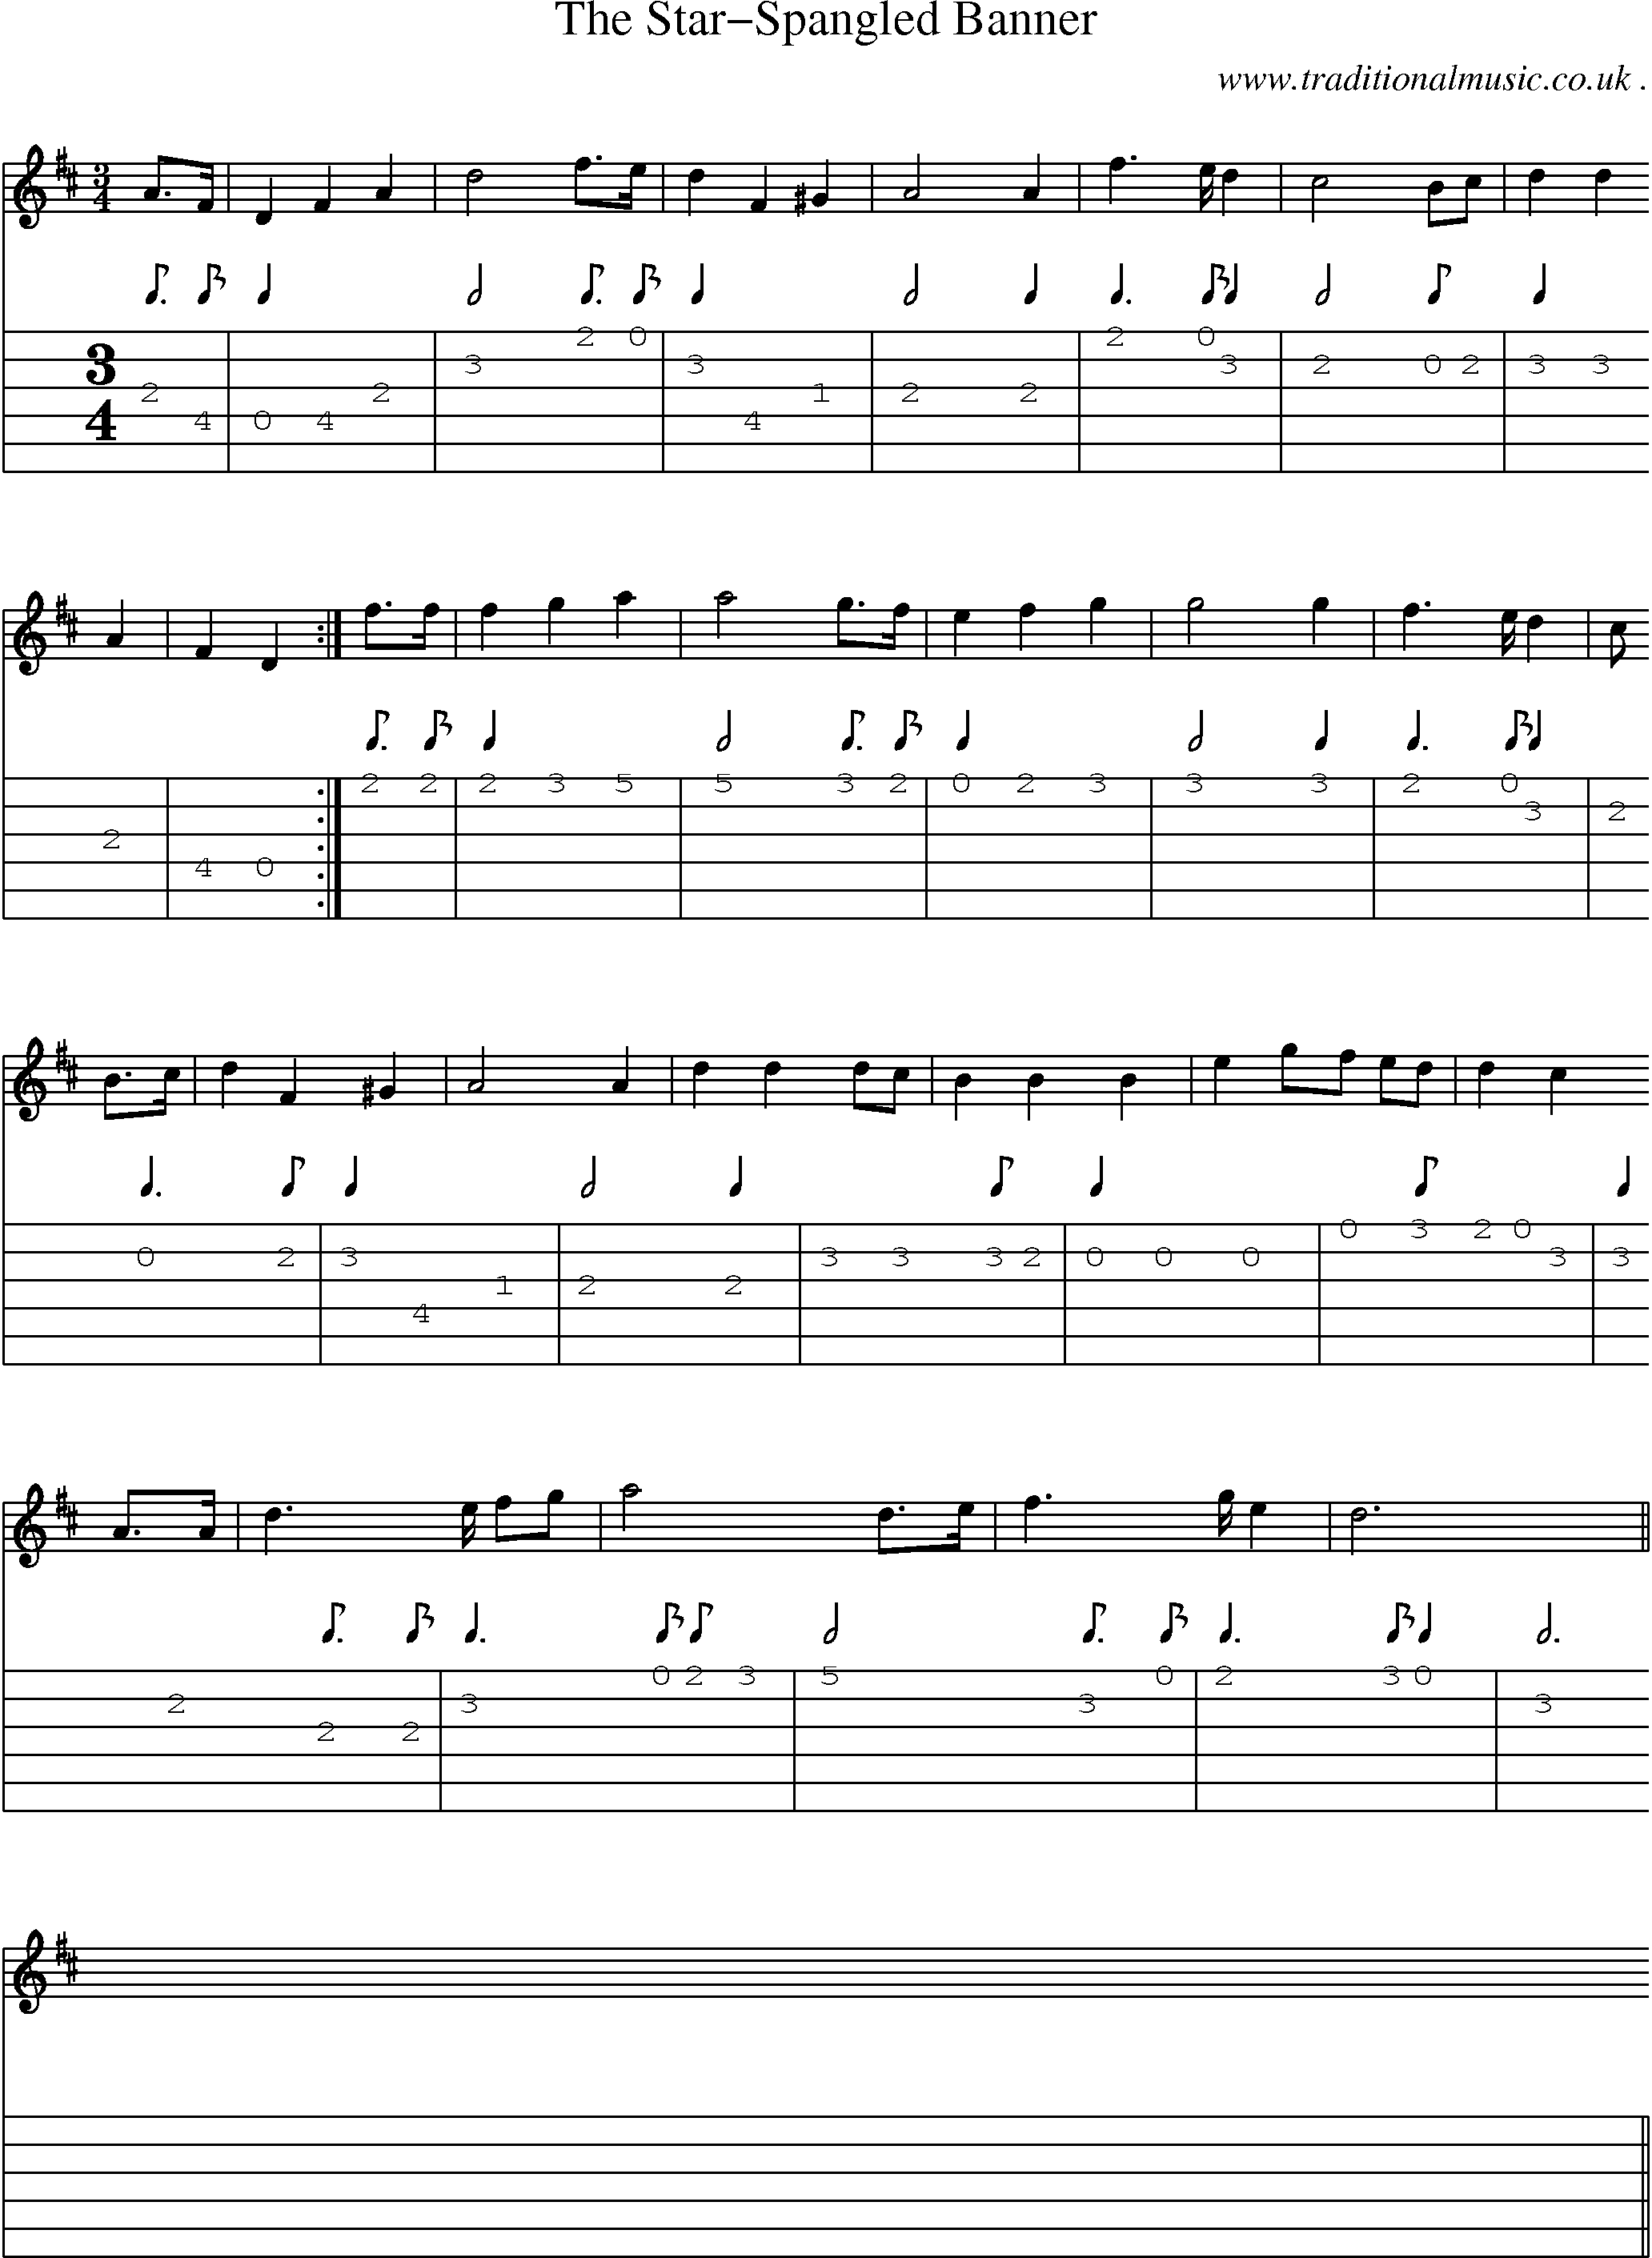 American Old Time Music Scores And Tabs For Guitar The Star